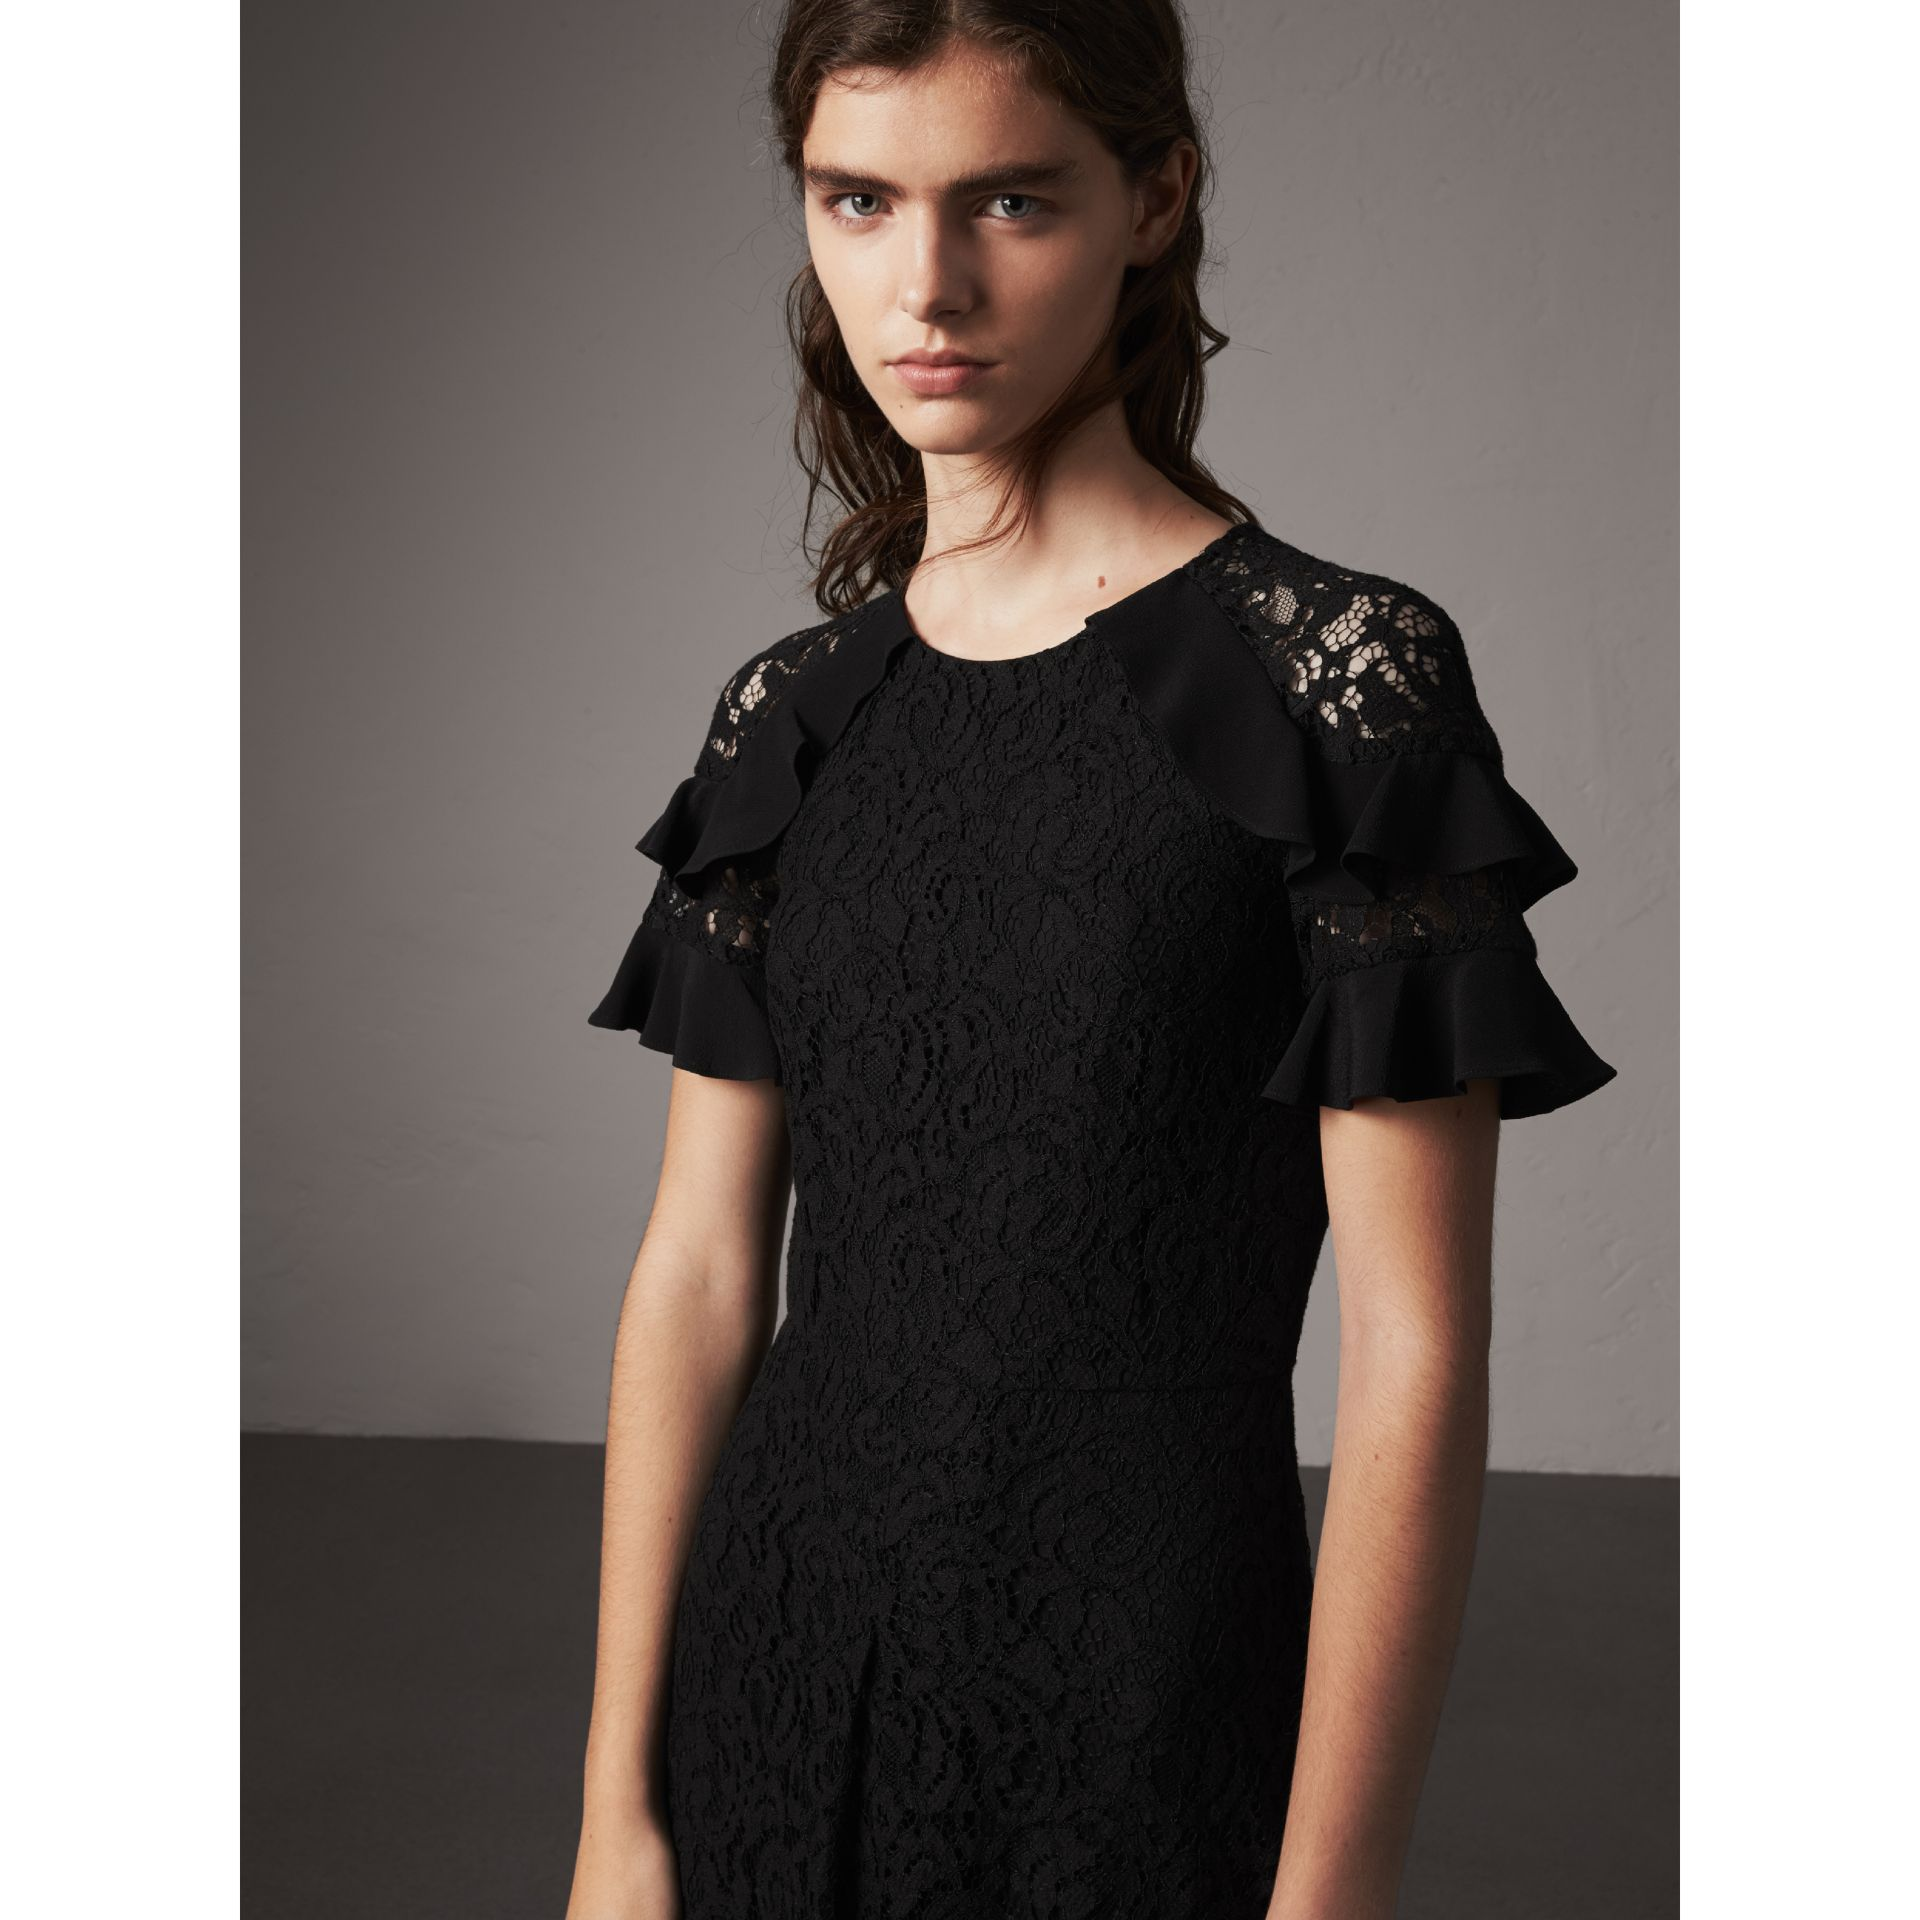 Ruffle Detail Floral Lace Dress in Black - Women | Burberry Singapore - gallery image 5